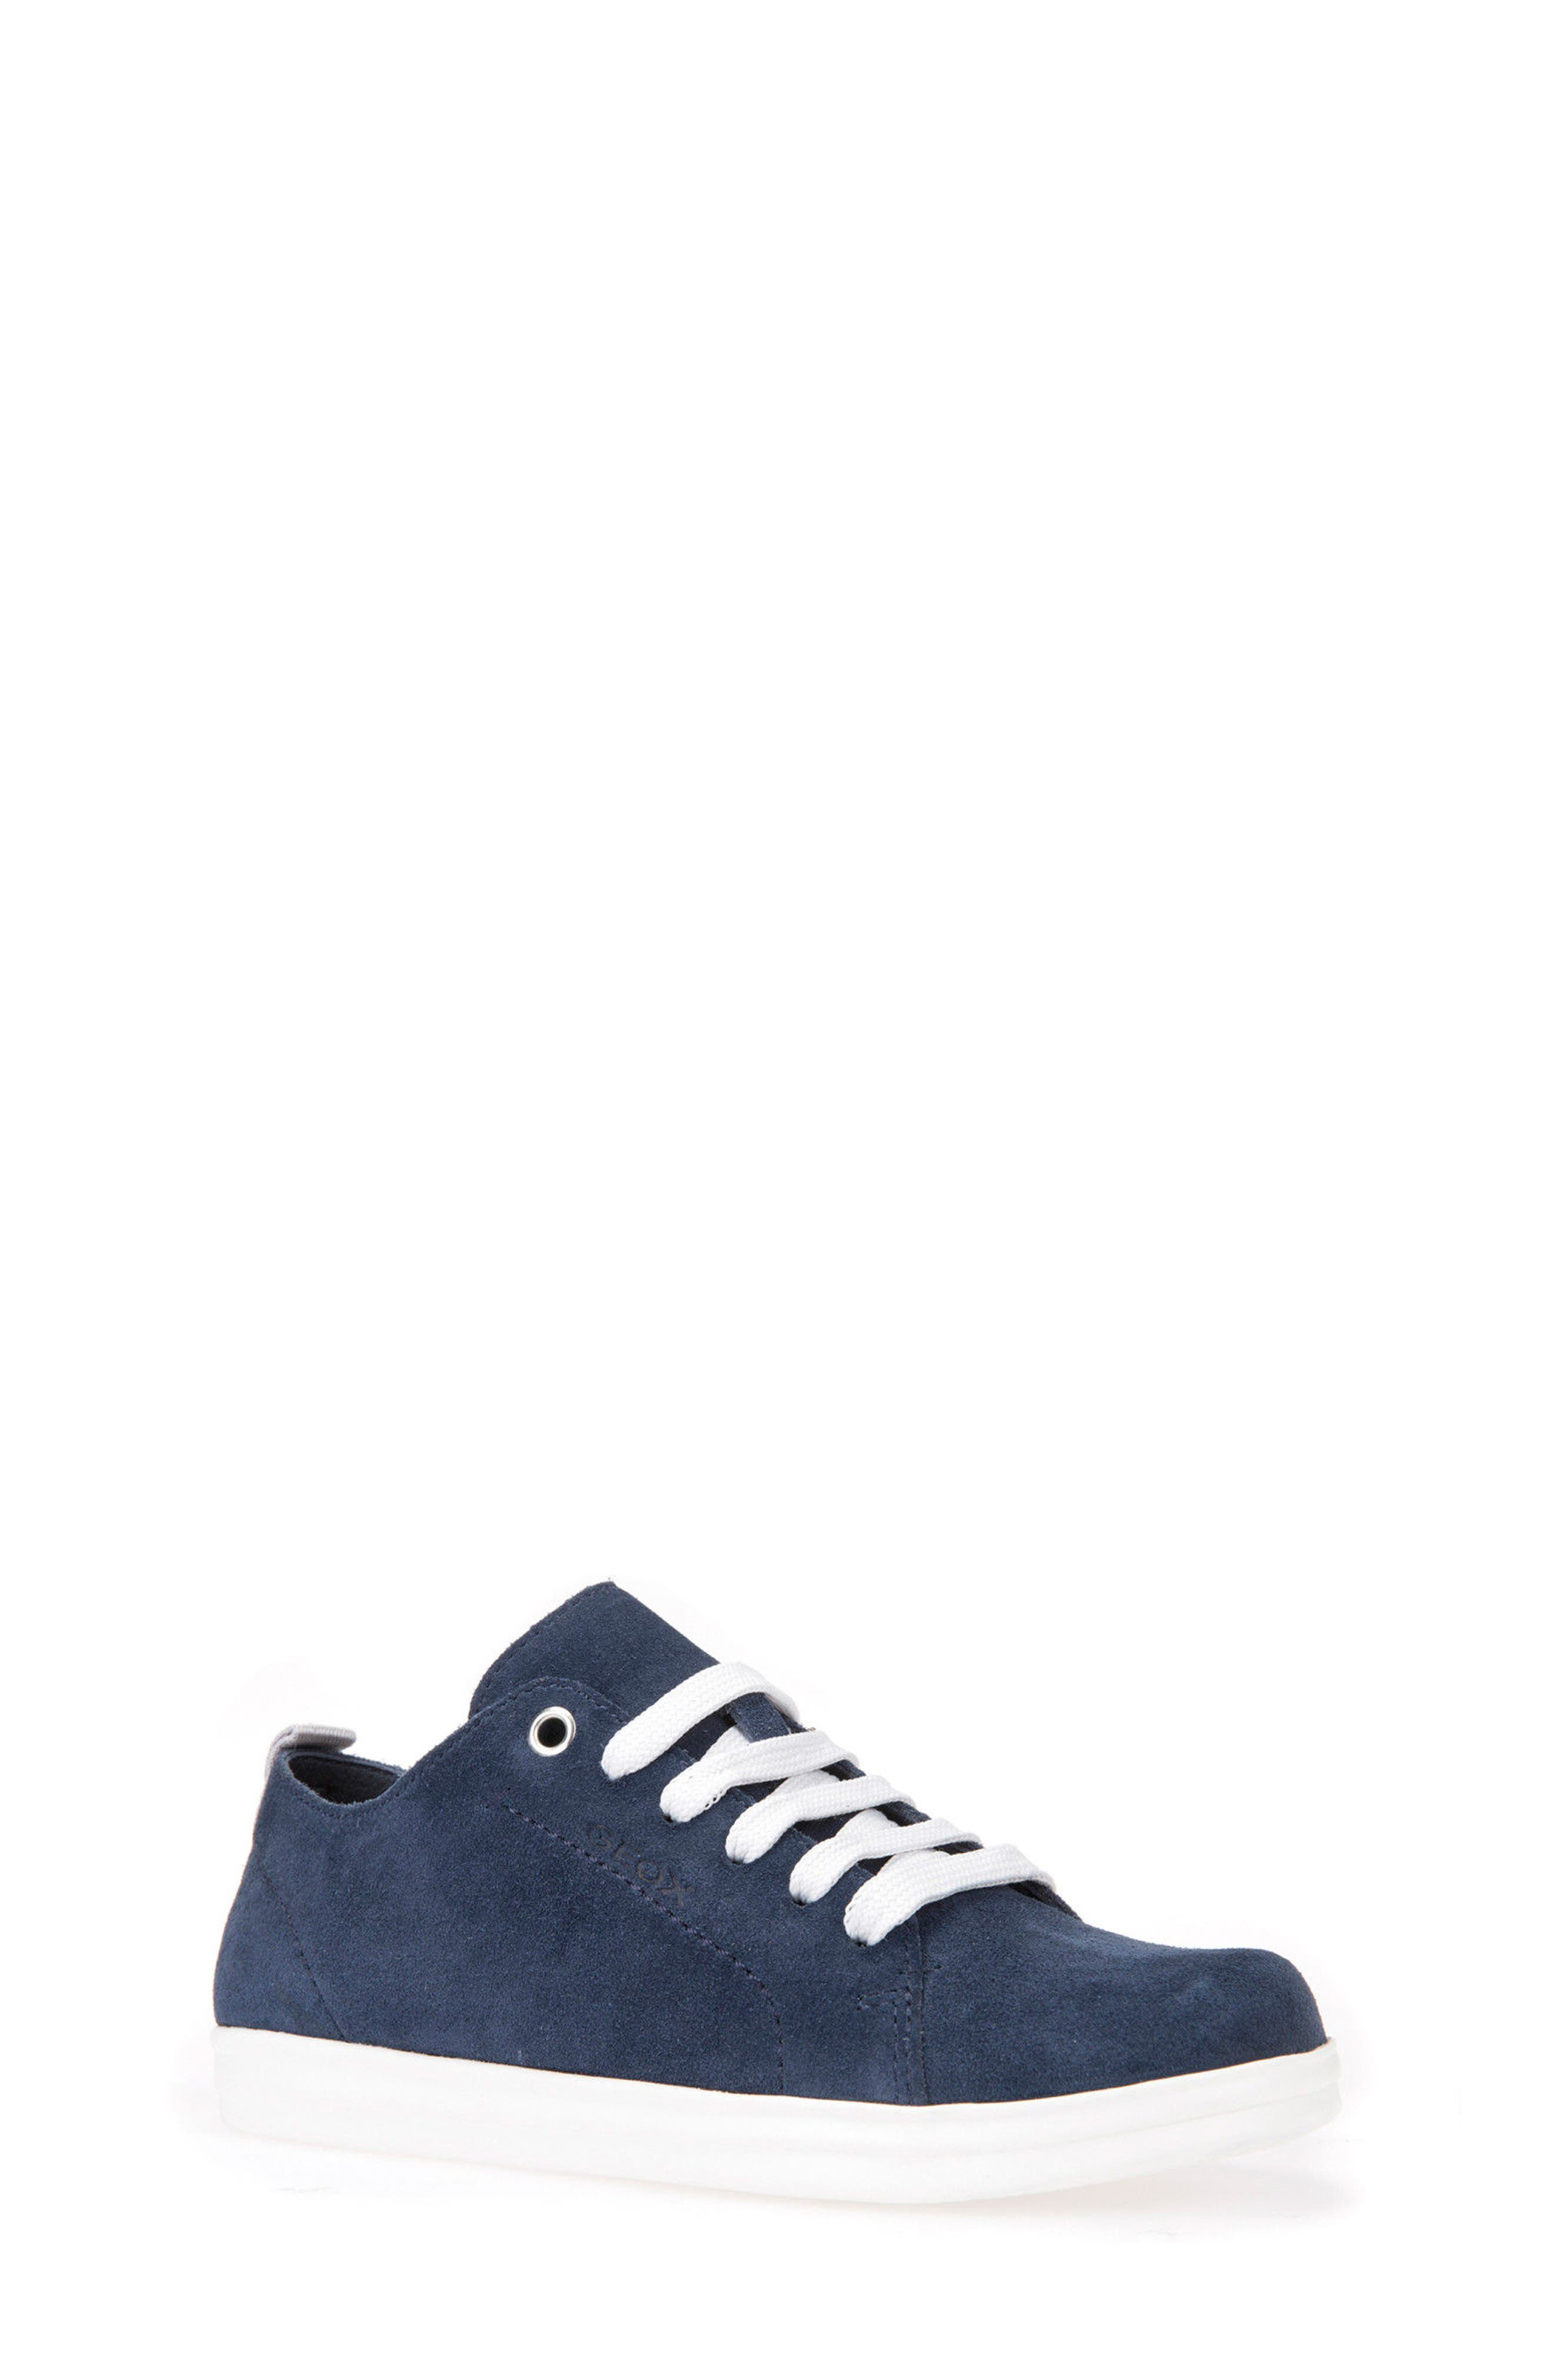 Anthor Low Top Sneaker,                         Main,                         color, Navy